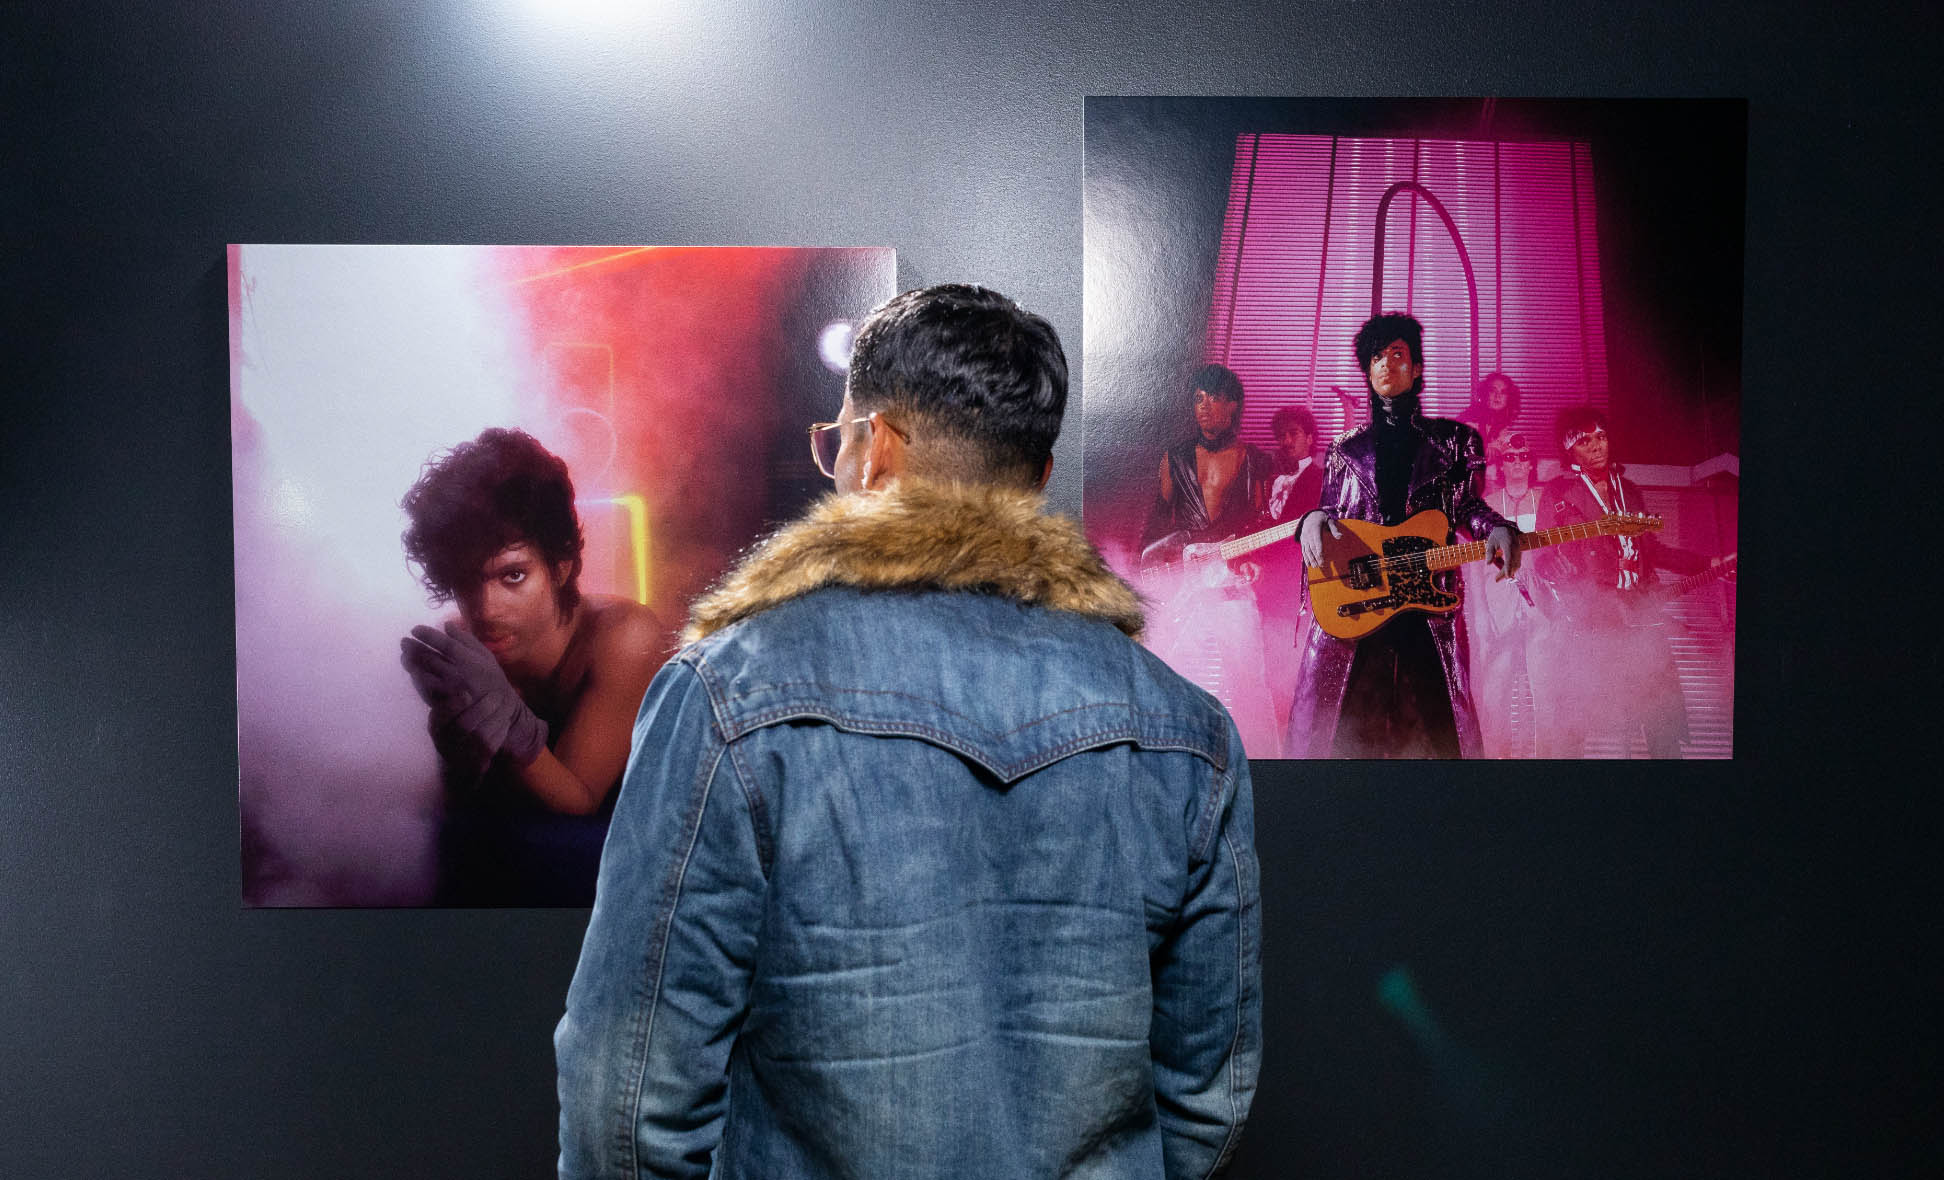 Man looking at photos in Prince Exhibit.